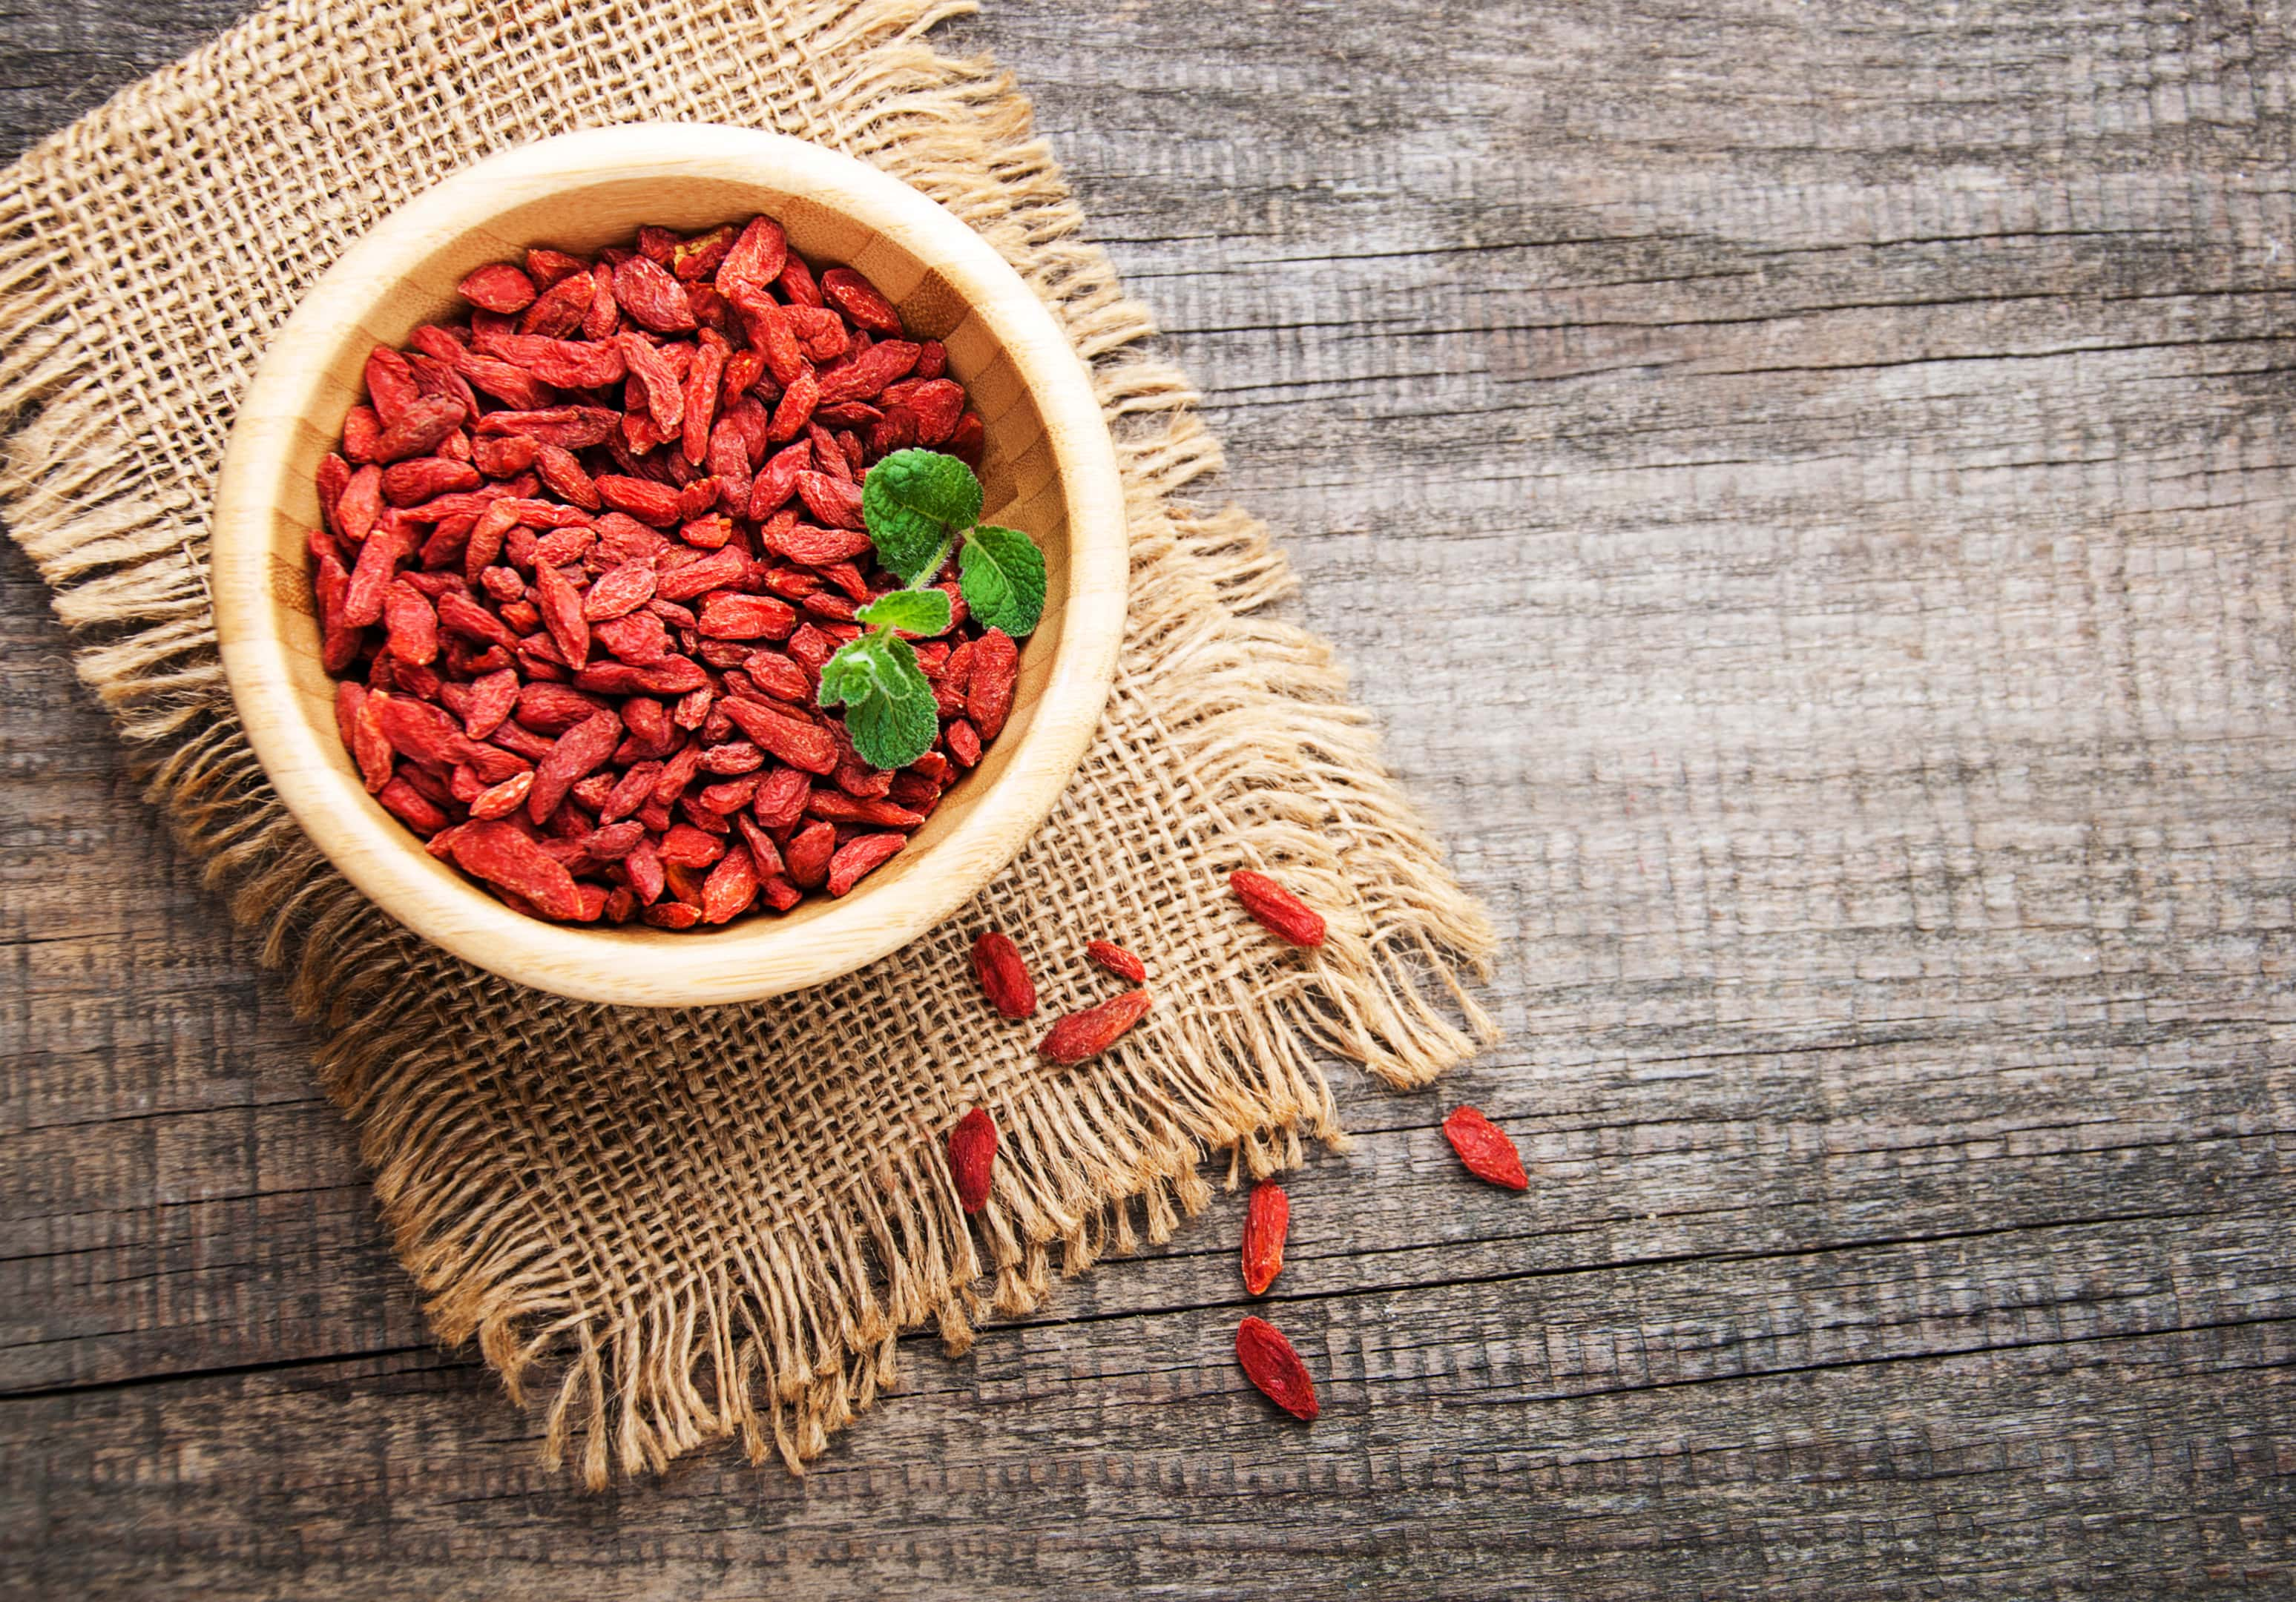 Dry red goji berries in wooden bowl